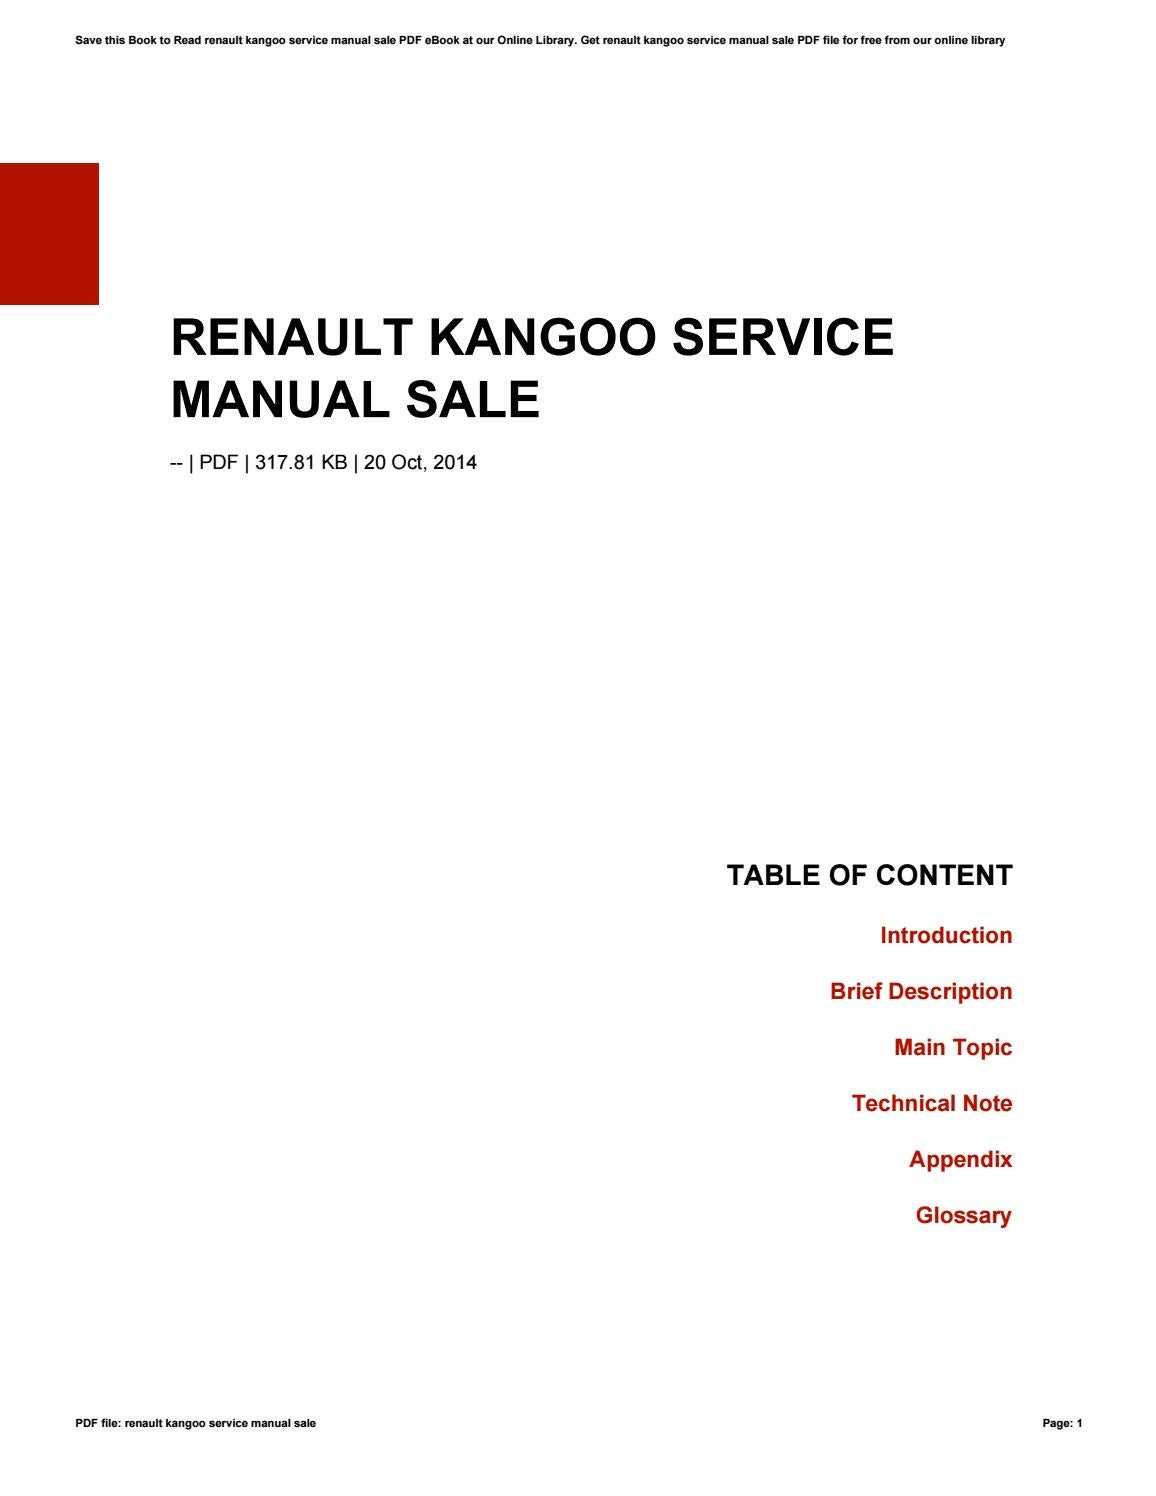 Renault kangoo service manual sale by JenniferDavis22041